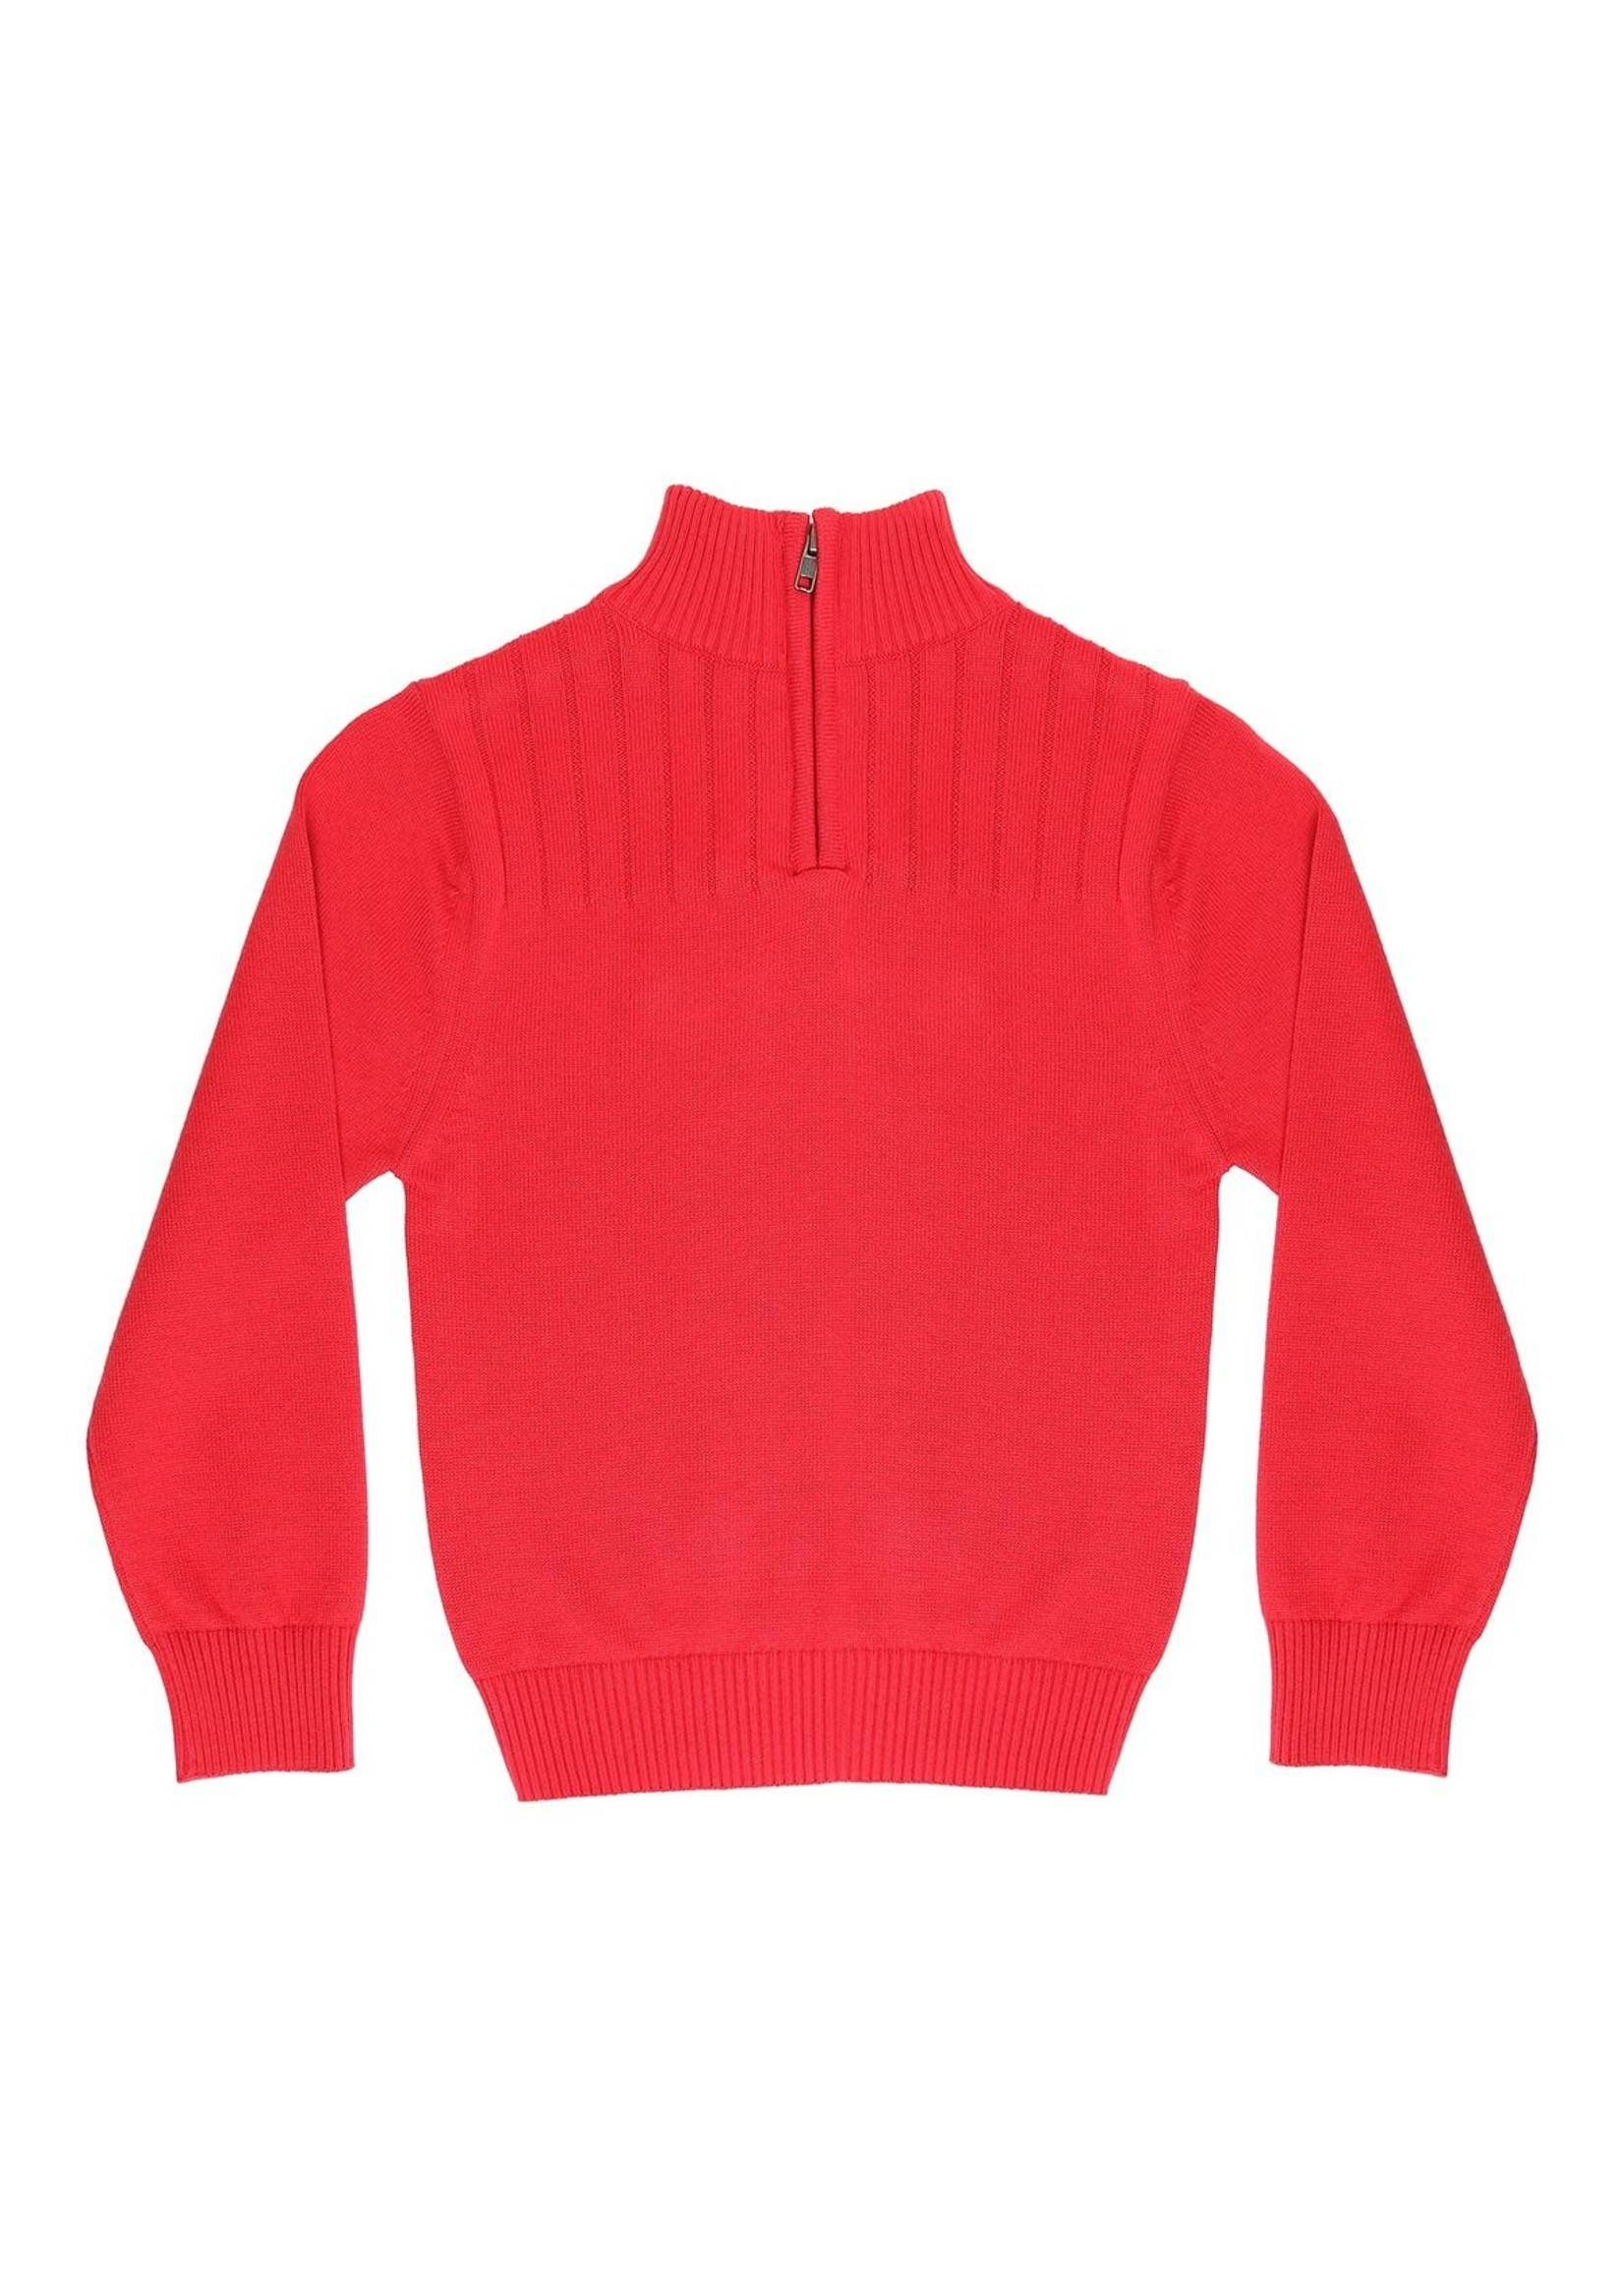 Pedal Pedal red quarter zip sweater